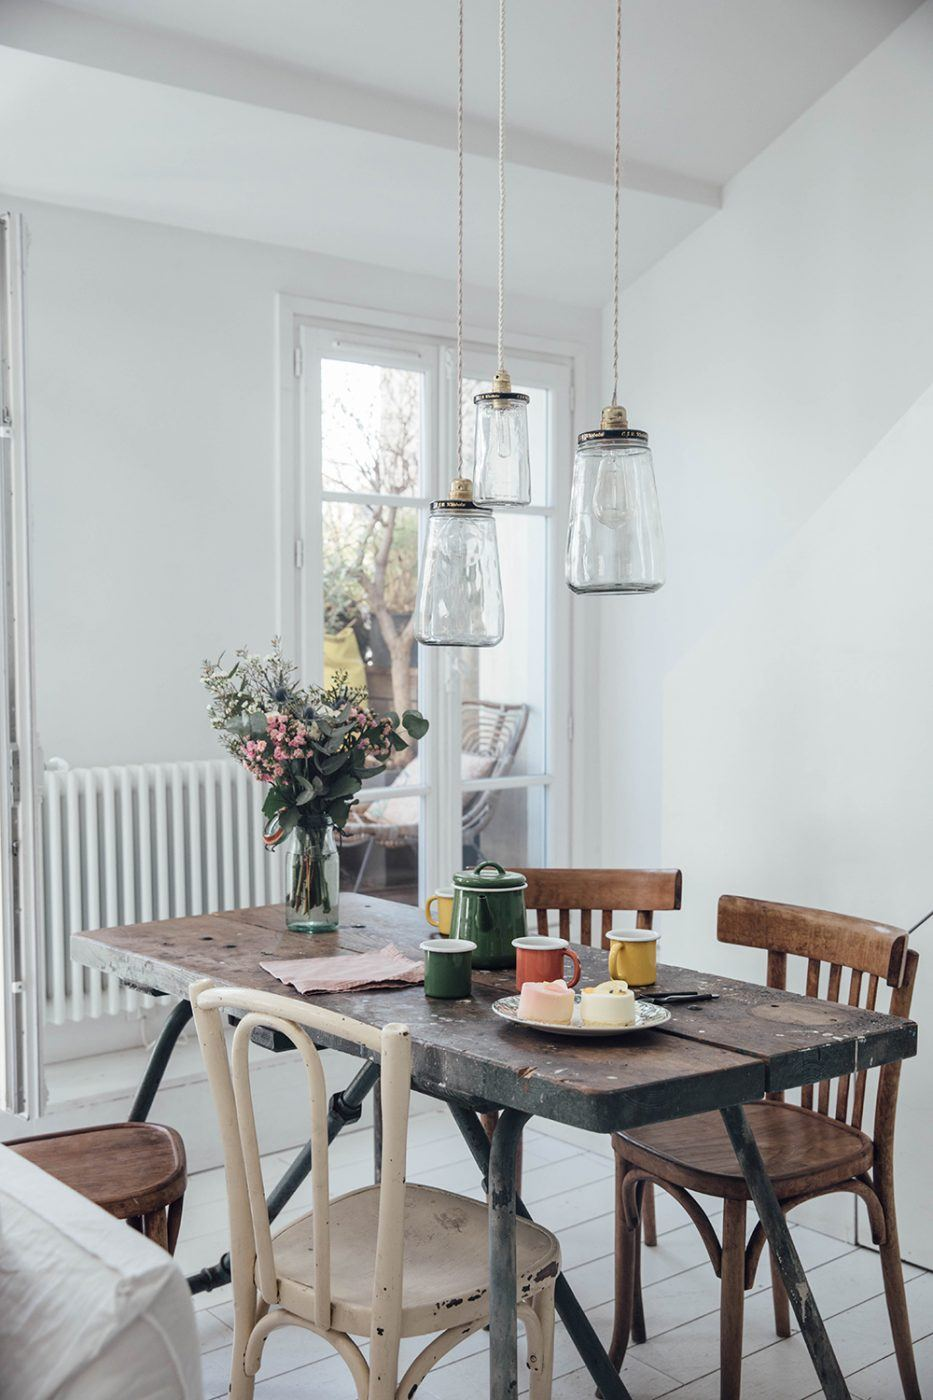 Home Tour Zoe de Las Cases Paris45